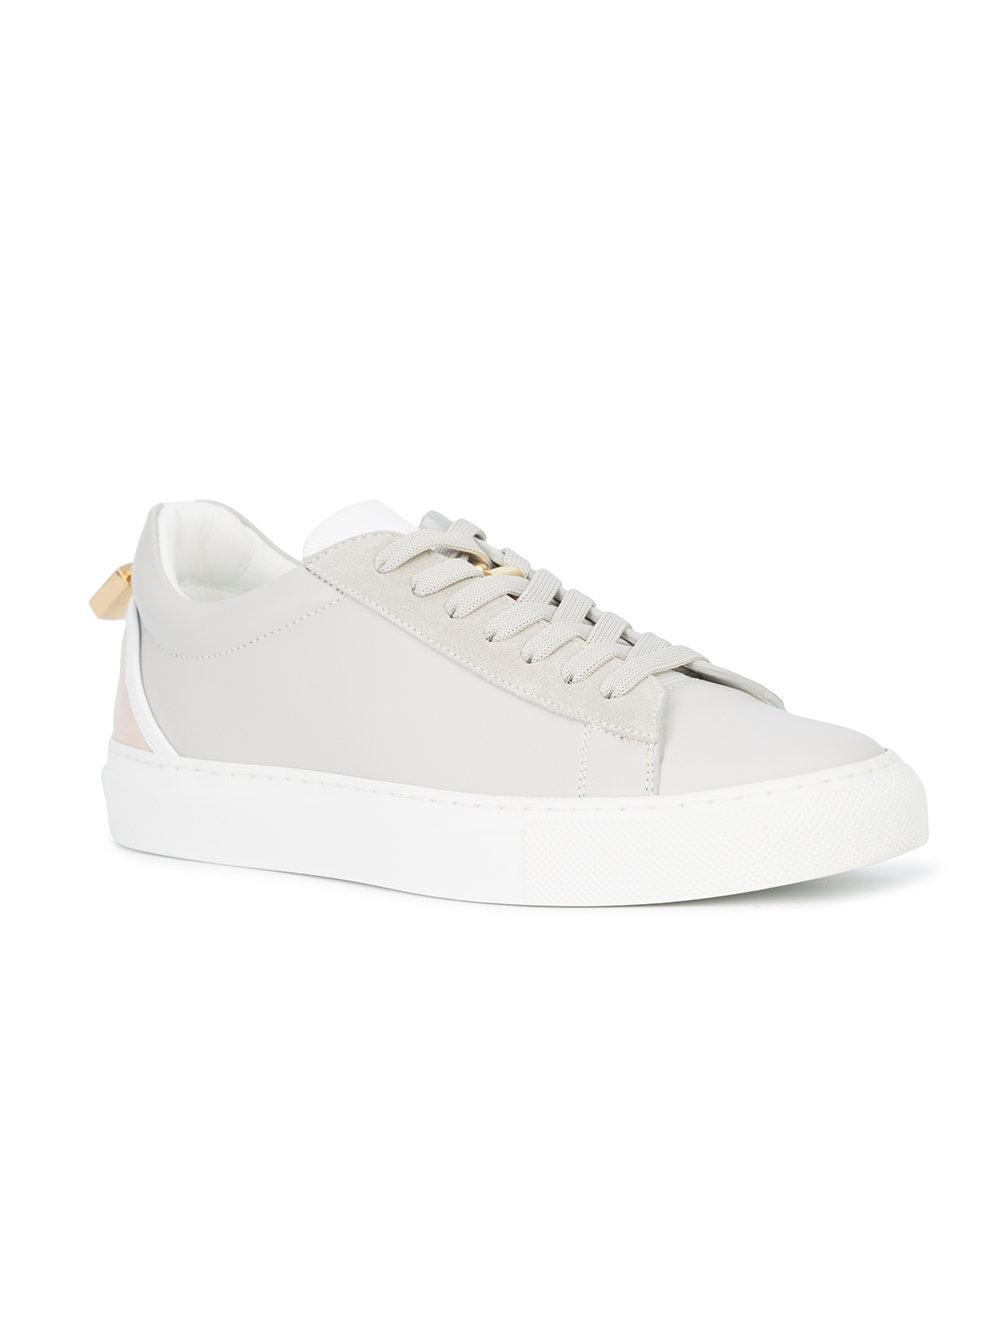 Buscemi Leather Tennis Sneakers in Grey (Grey)